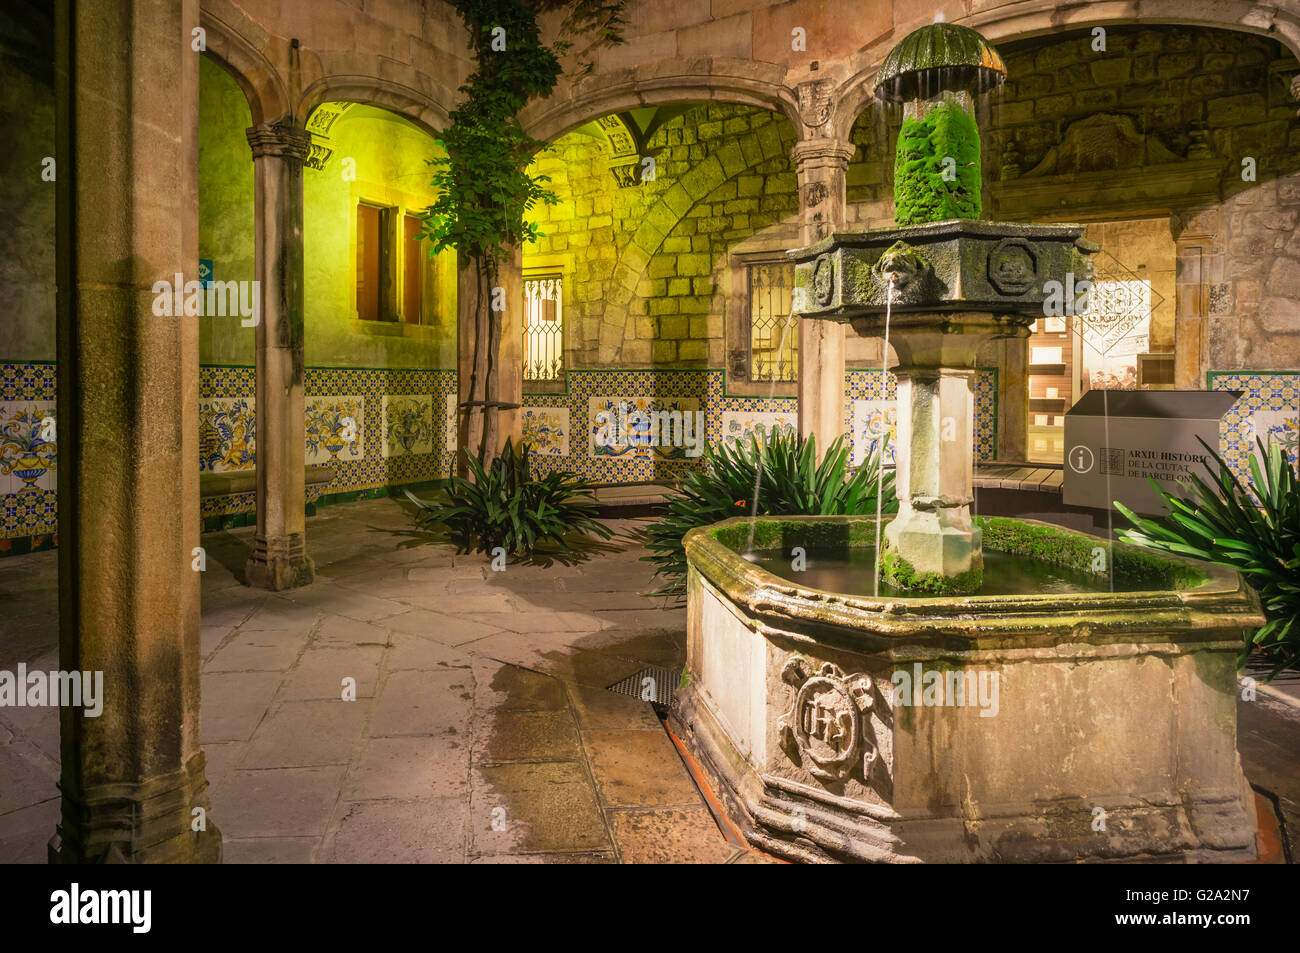 Arxiu Històric de la Ciutat de Barcelona, Historical Archive of the City of Barcelona, Courtyard of the Archdeacon's - Stock Image